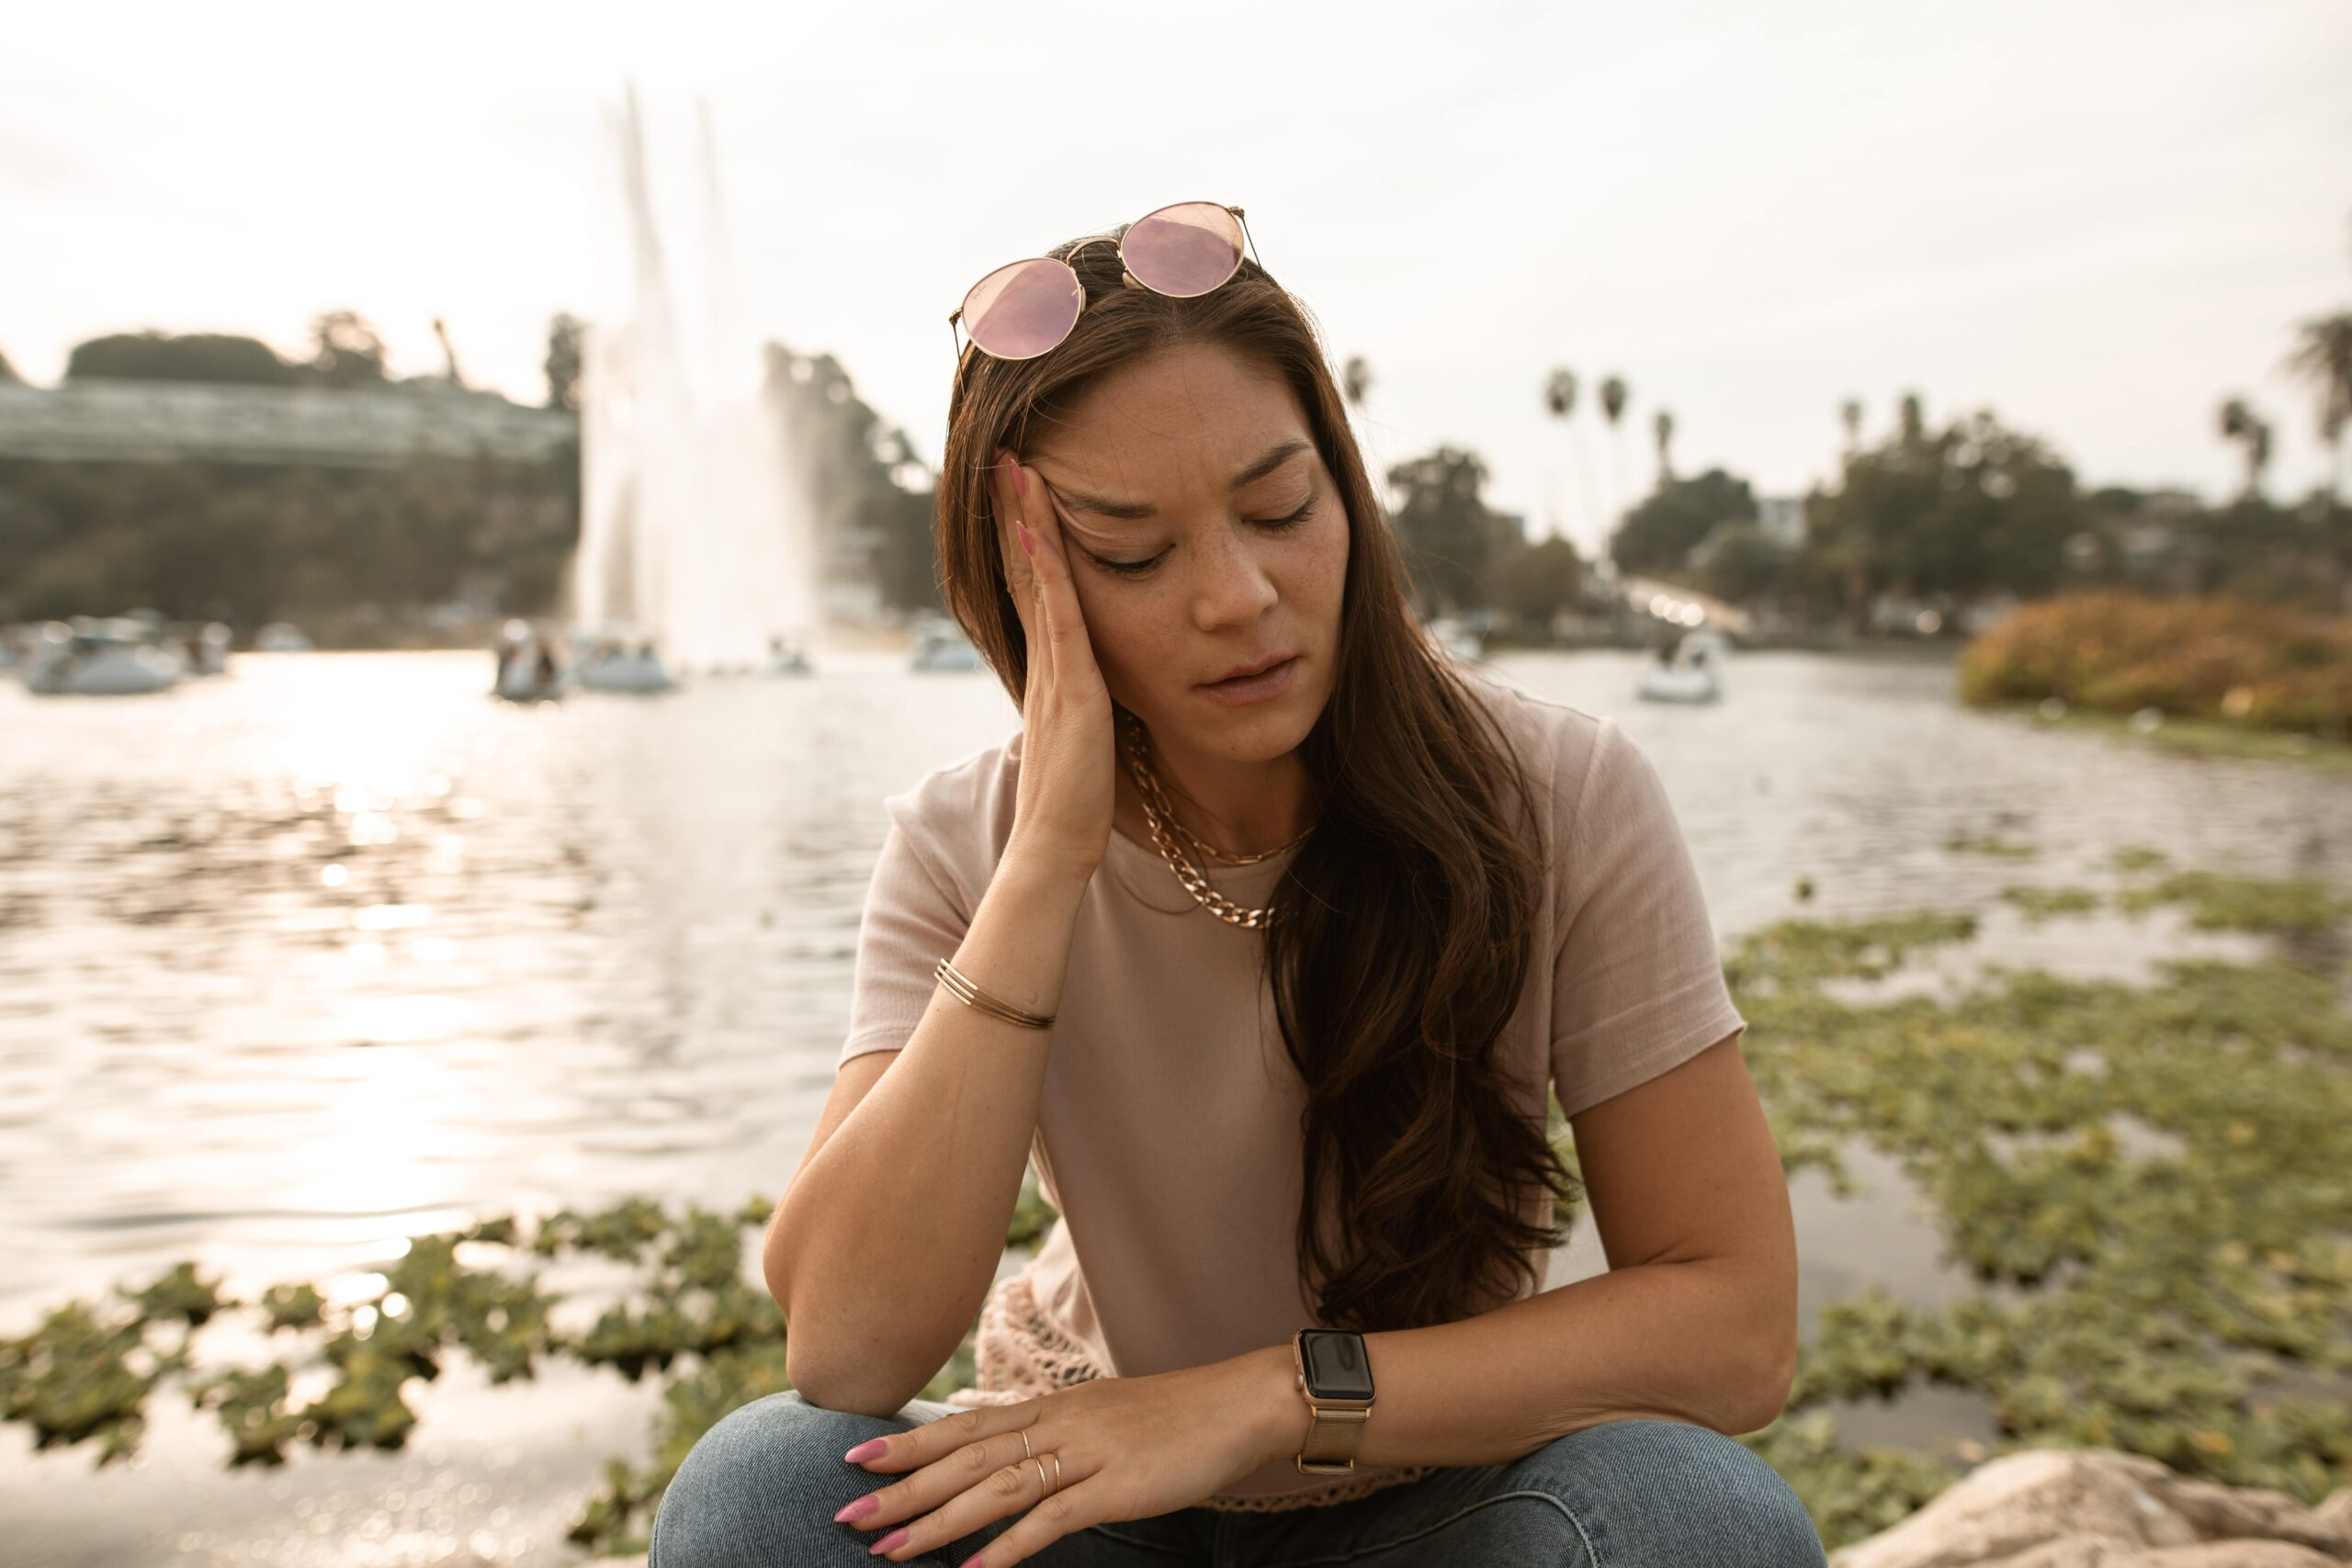 Woman sitting next to water holding her head